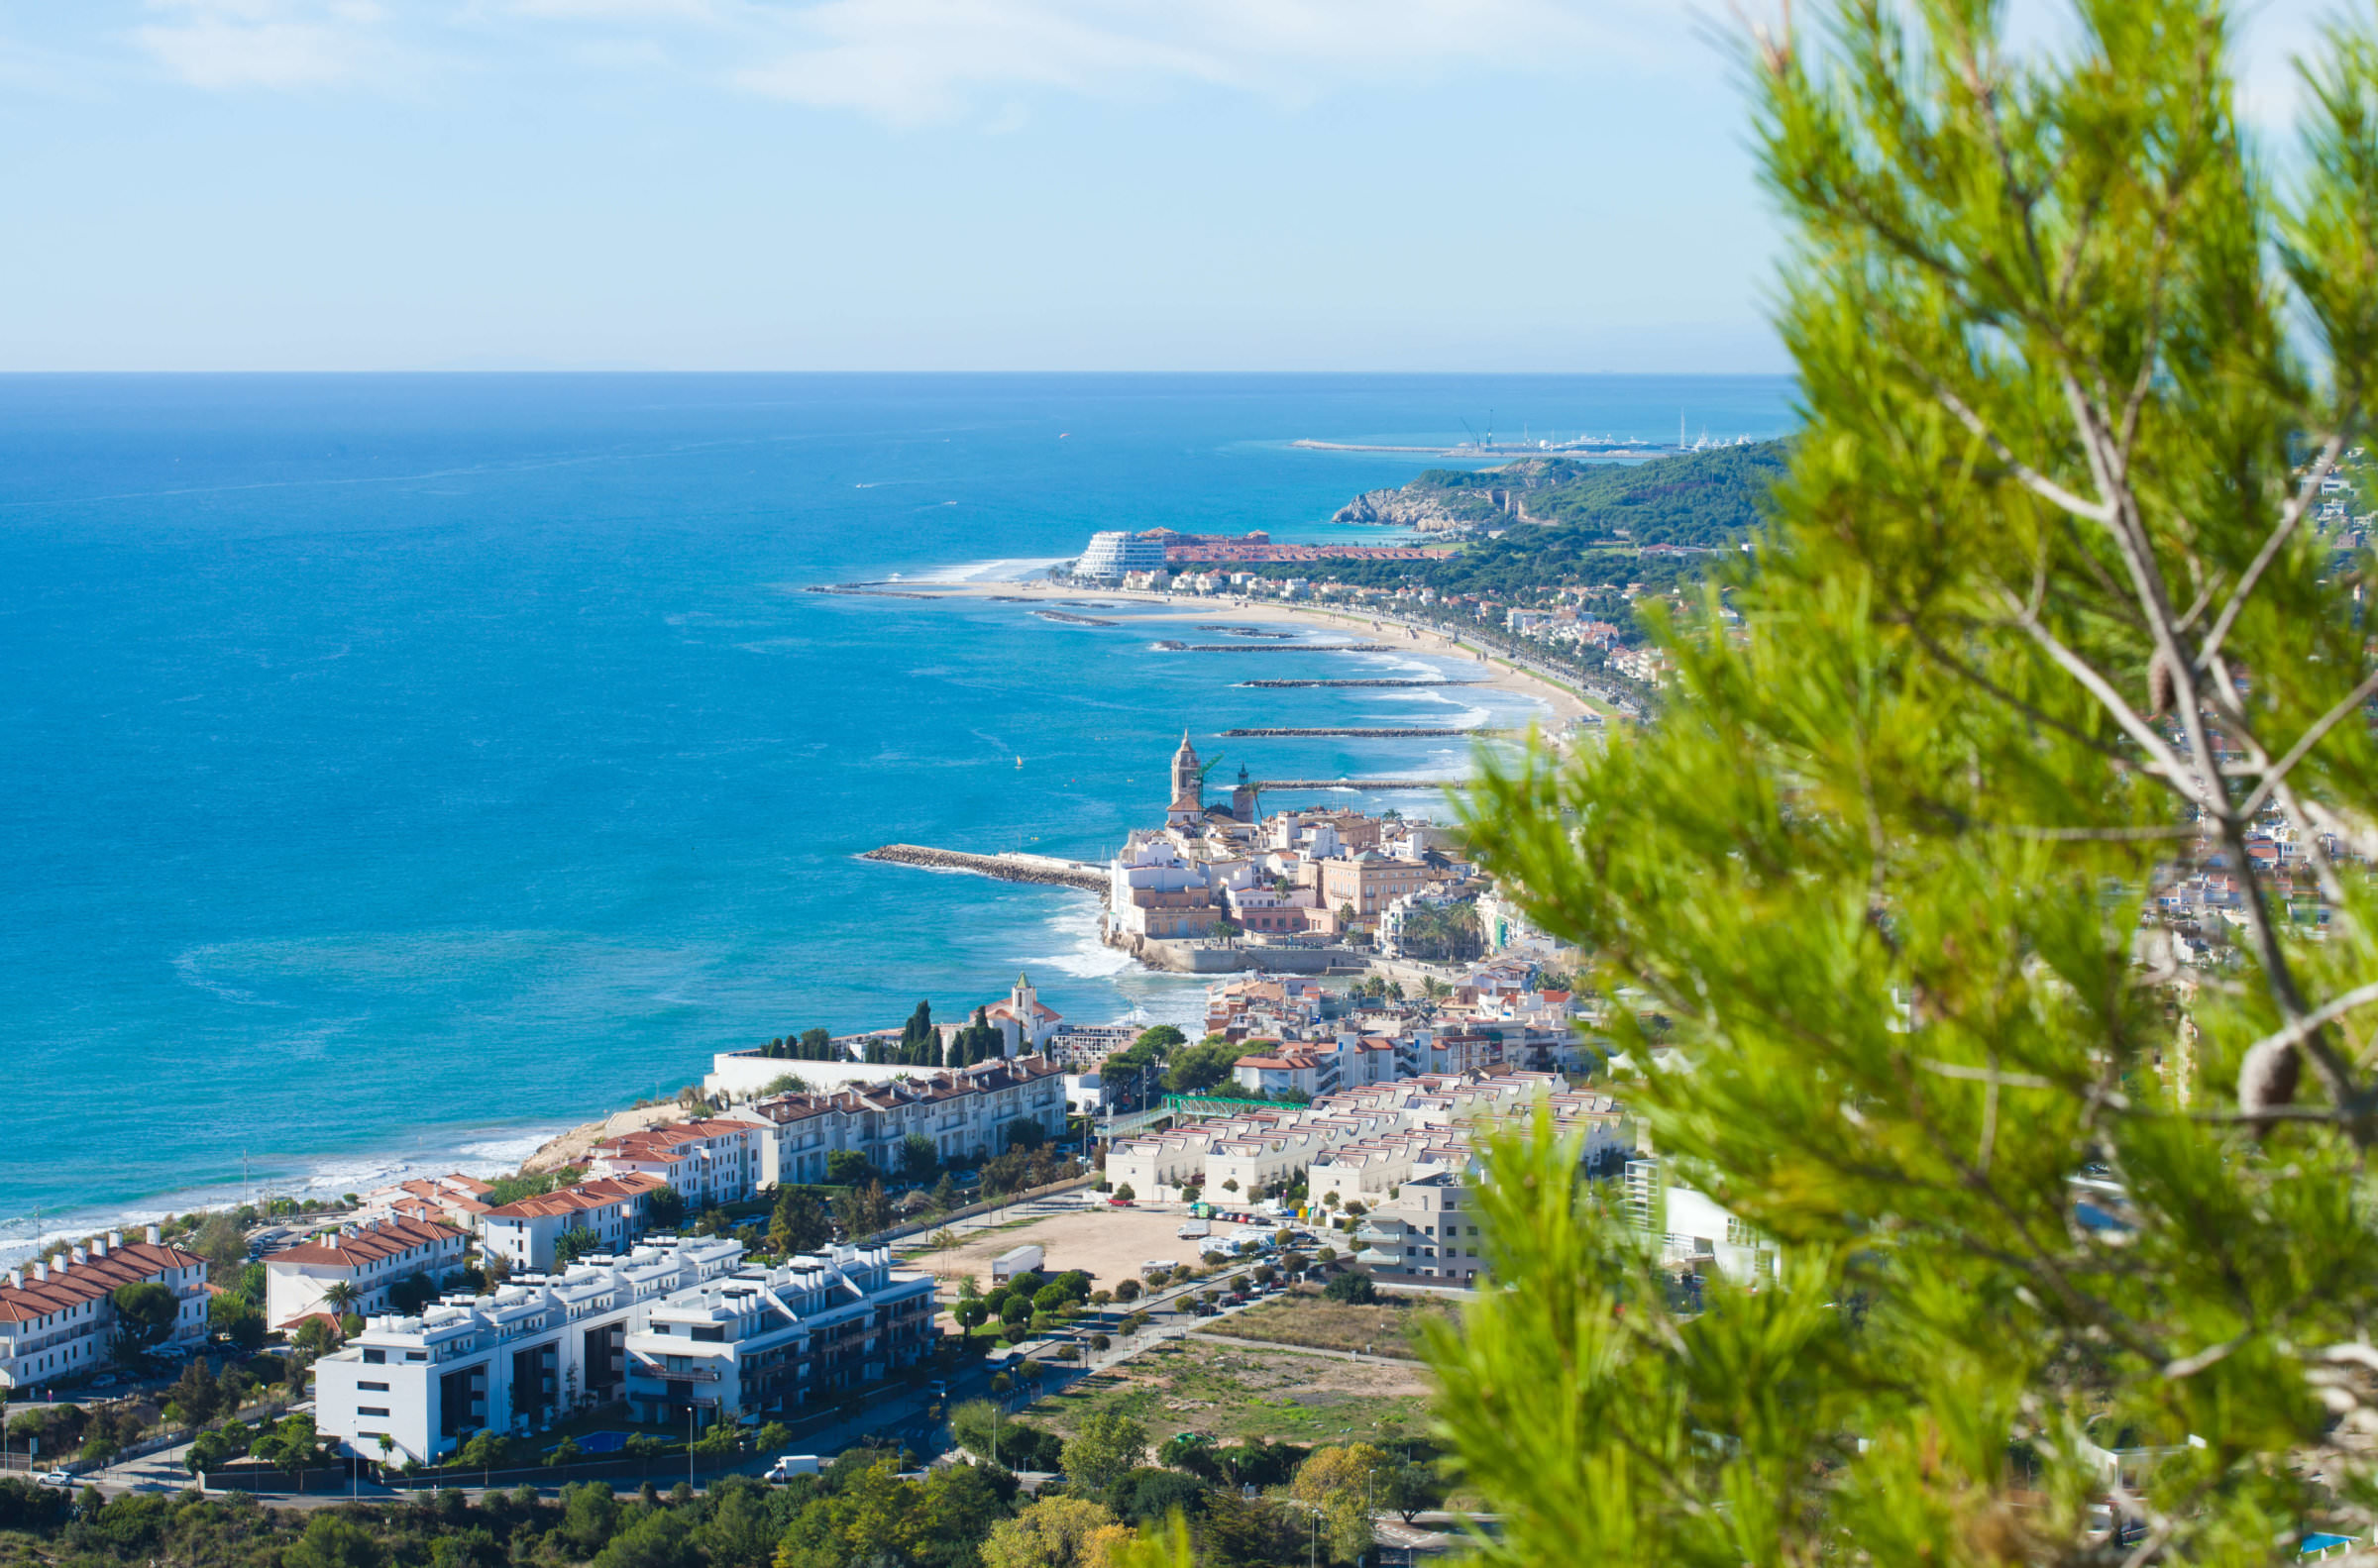 View over Sitges, near Barcelona